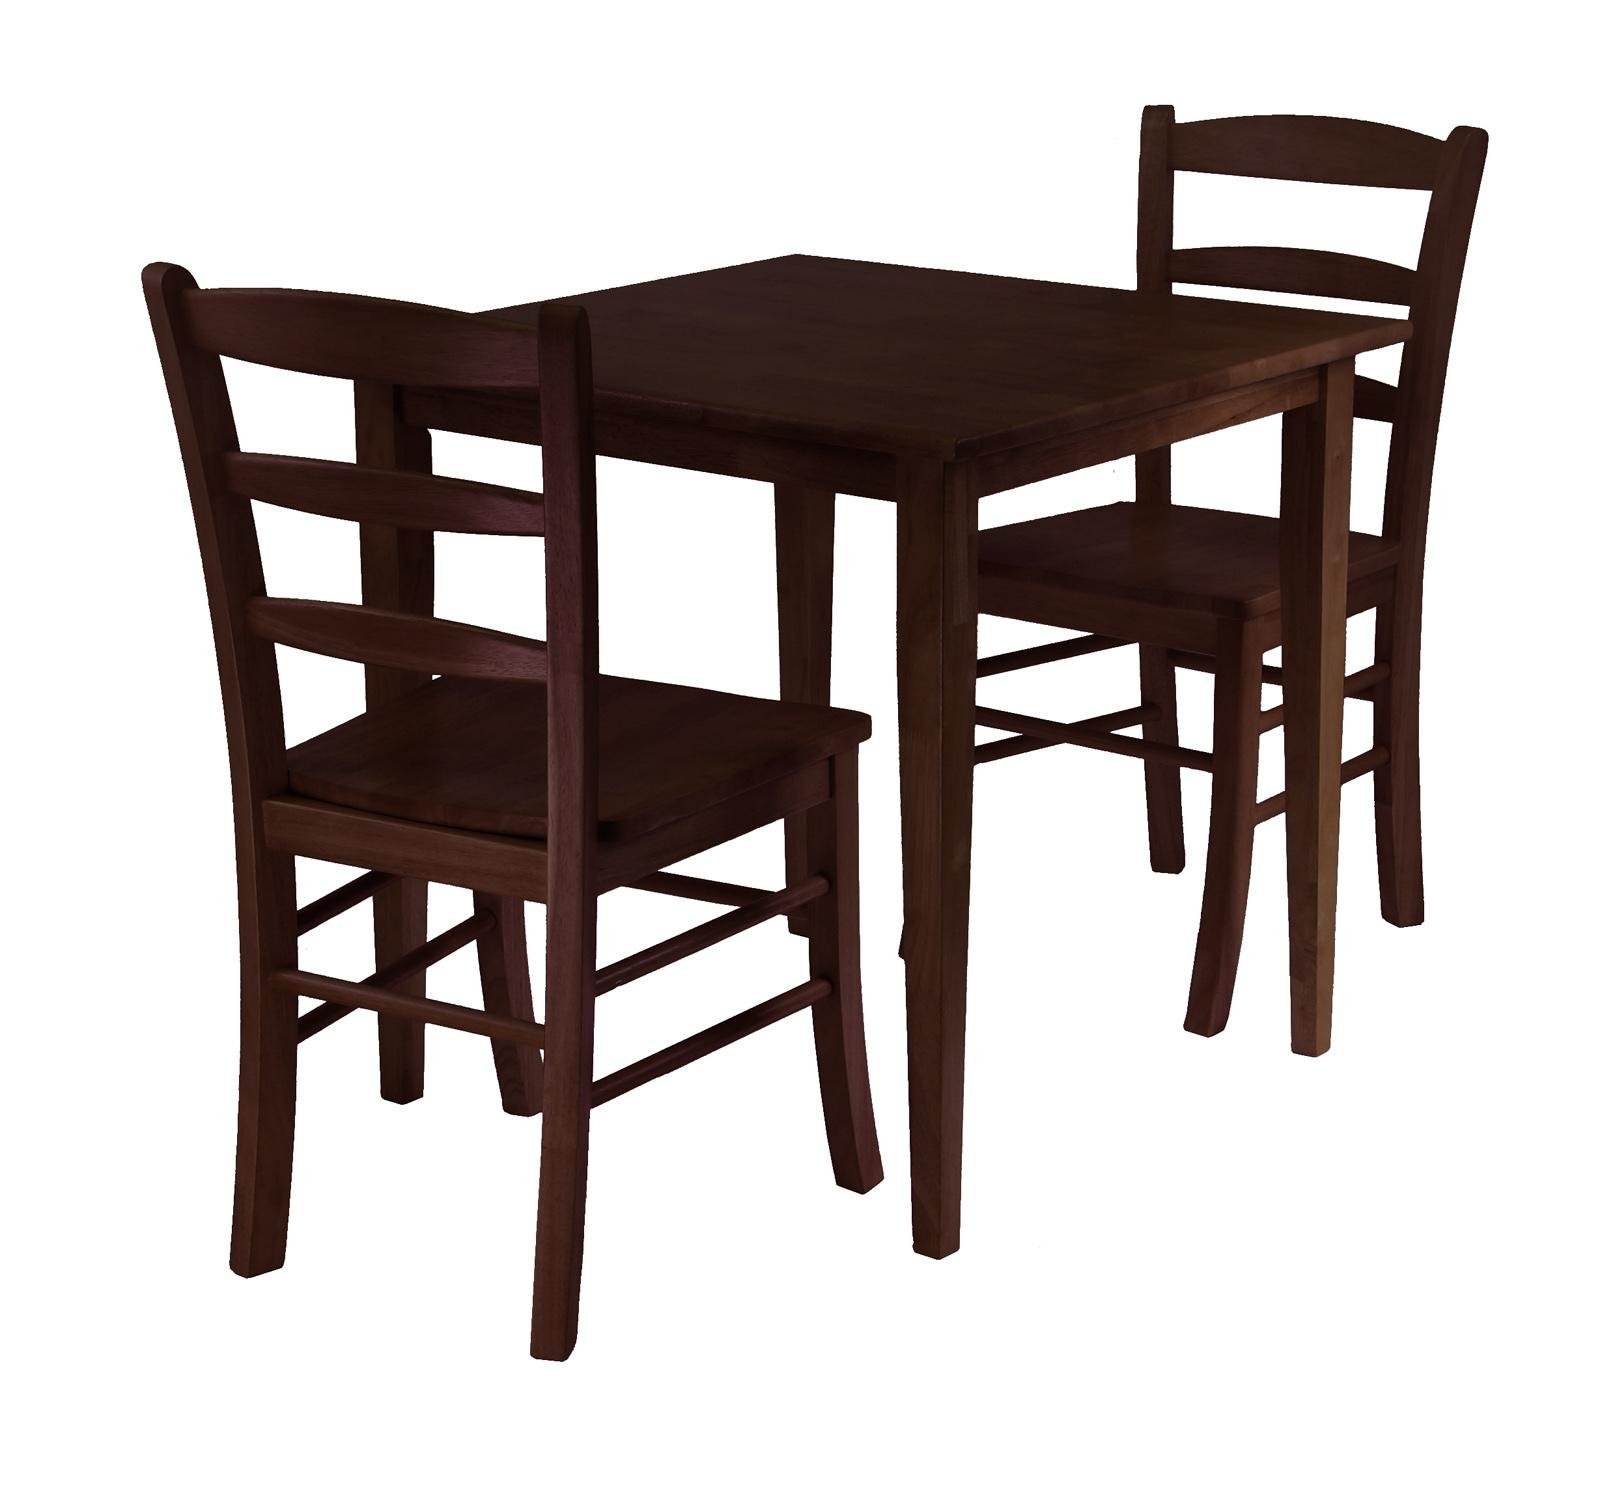 Winsome Wood Groveland 3pc Square Dining Table with 2 Chairs - Chairs Measure 16.6 x 20.5 x 34.7; Height 29.13; Color Brown; Finished Dark Wood Length 29.53 Width 29.53 - kitchen-dining-room-furniture, kitchen-dining-room, dining-sets - 71WlfzSk%2BAL -